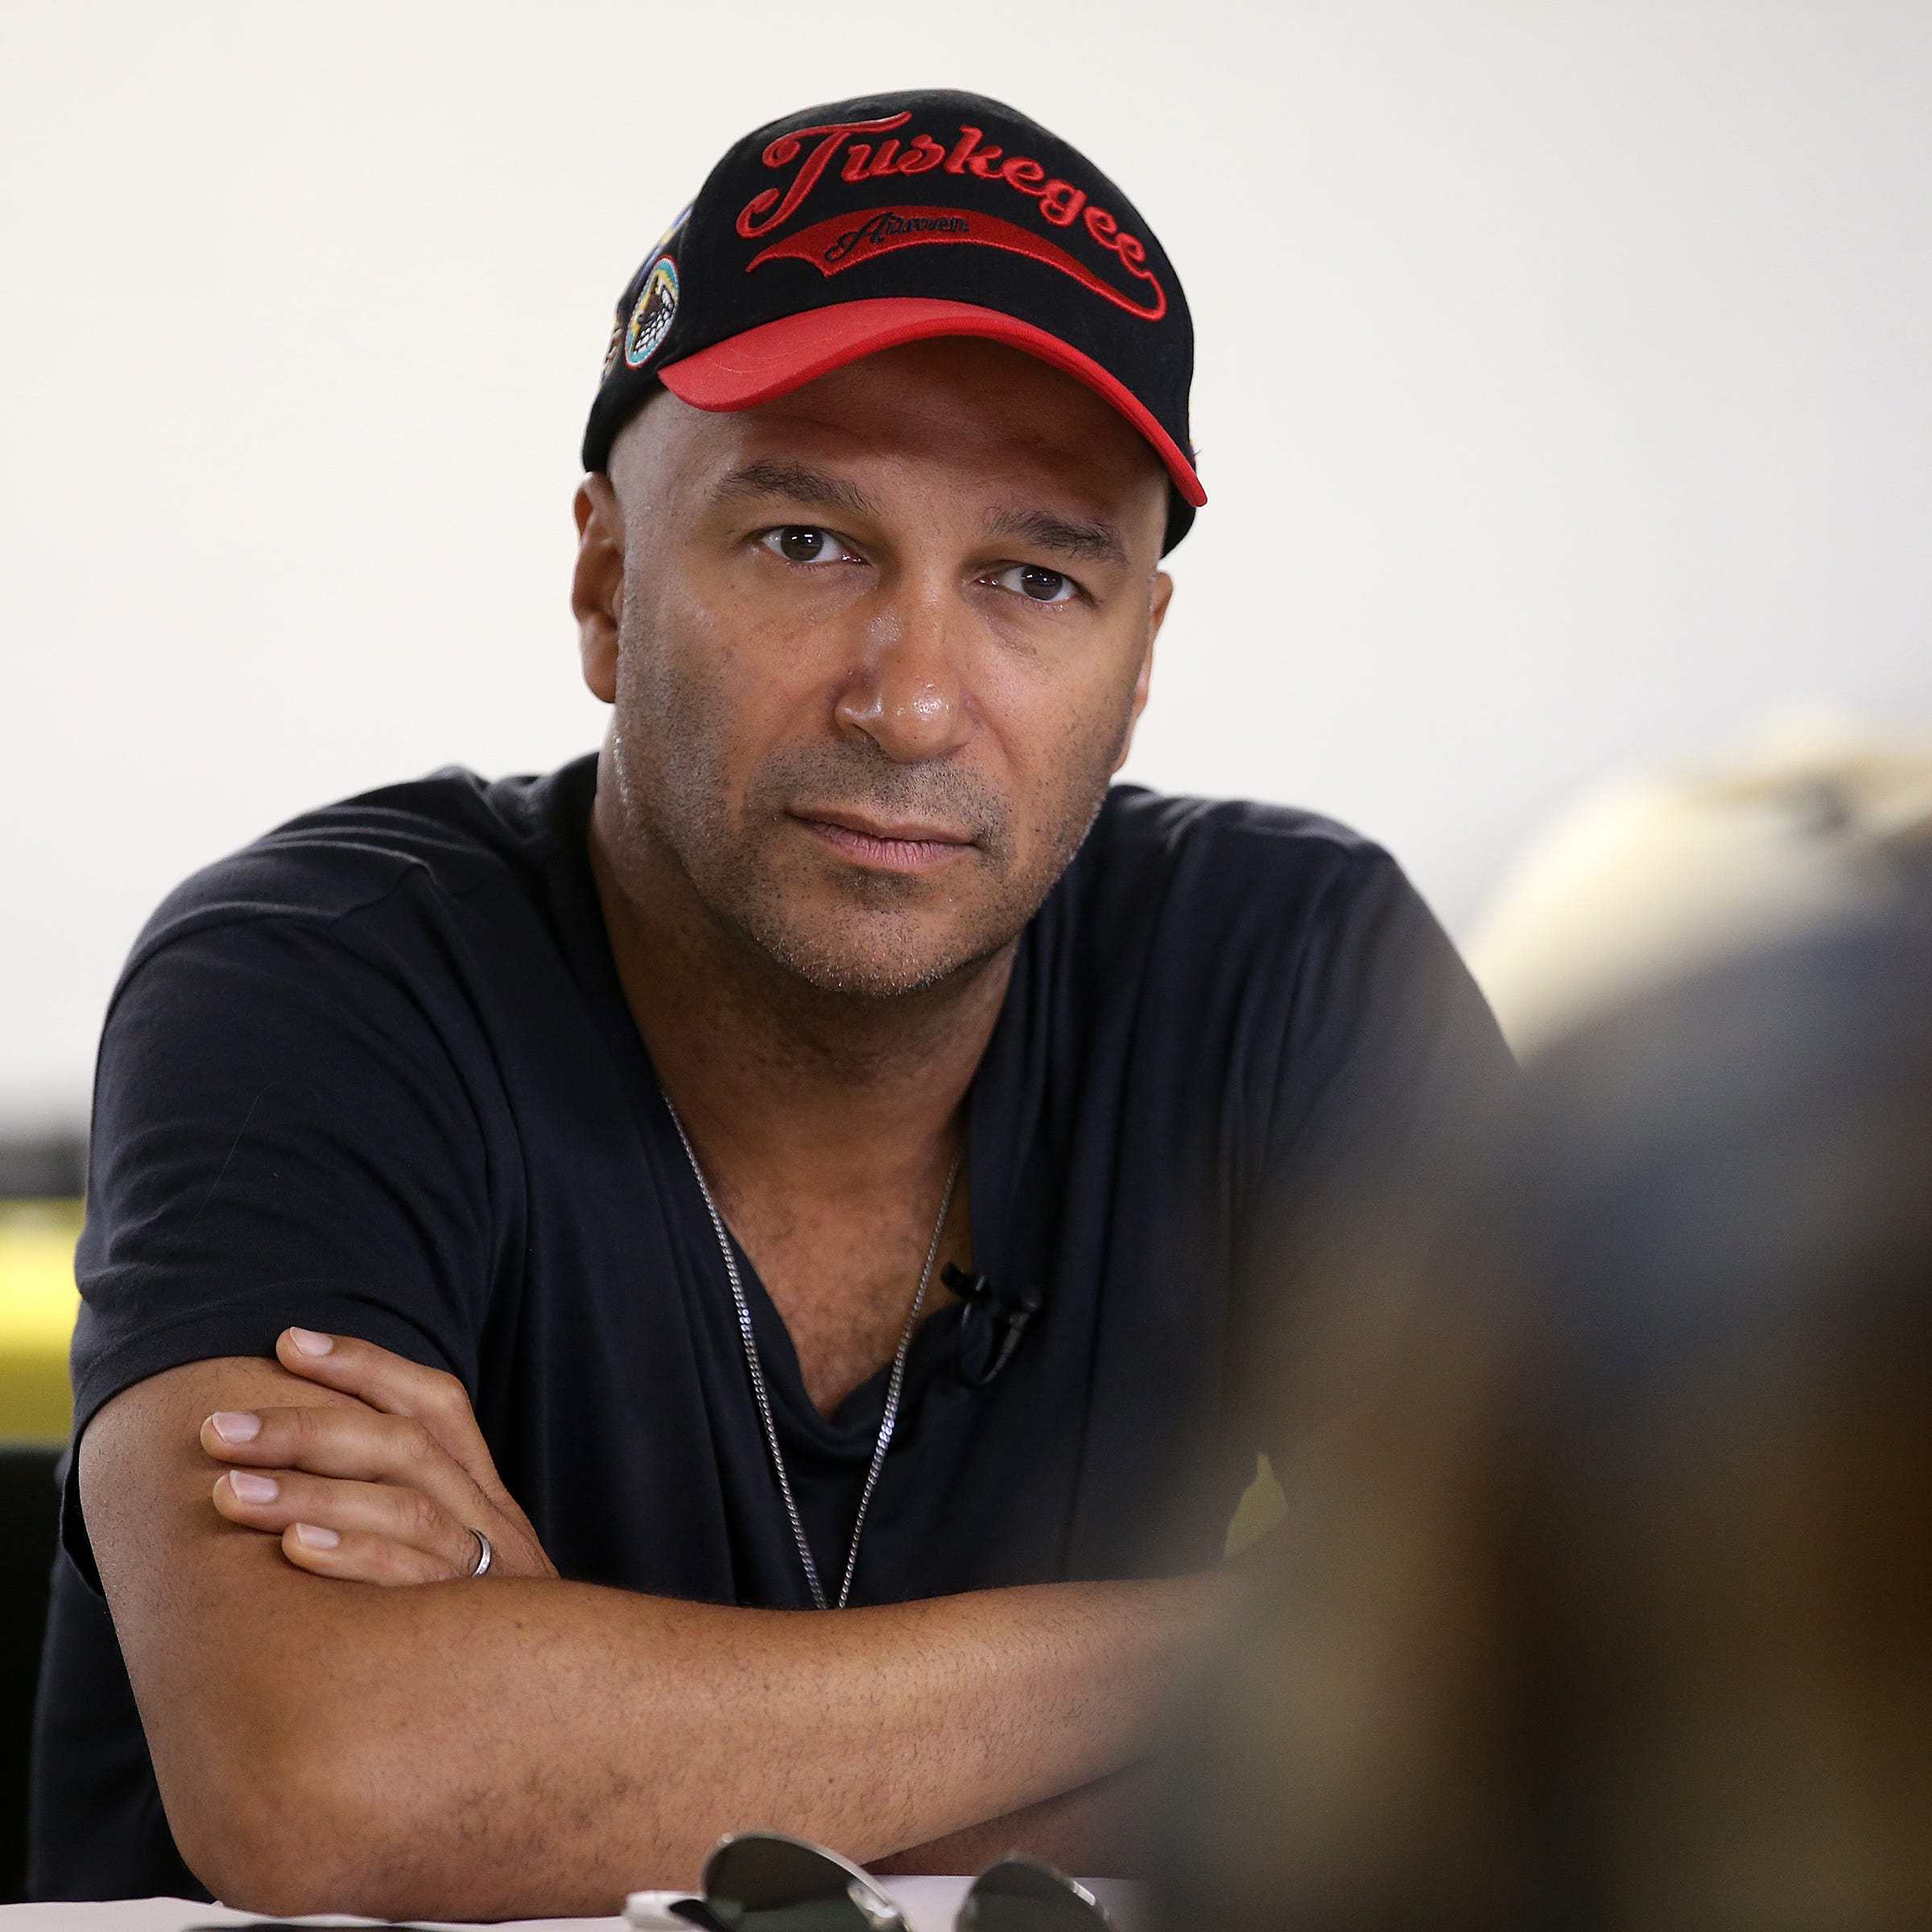 Tom Morello targets 'egregious' solitary confinement in Asbury Park